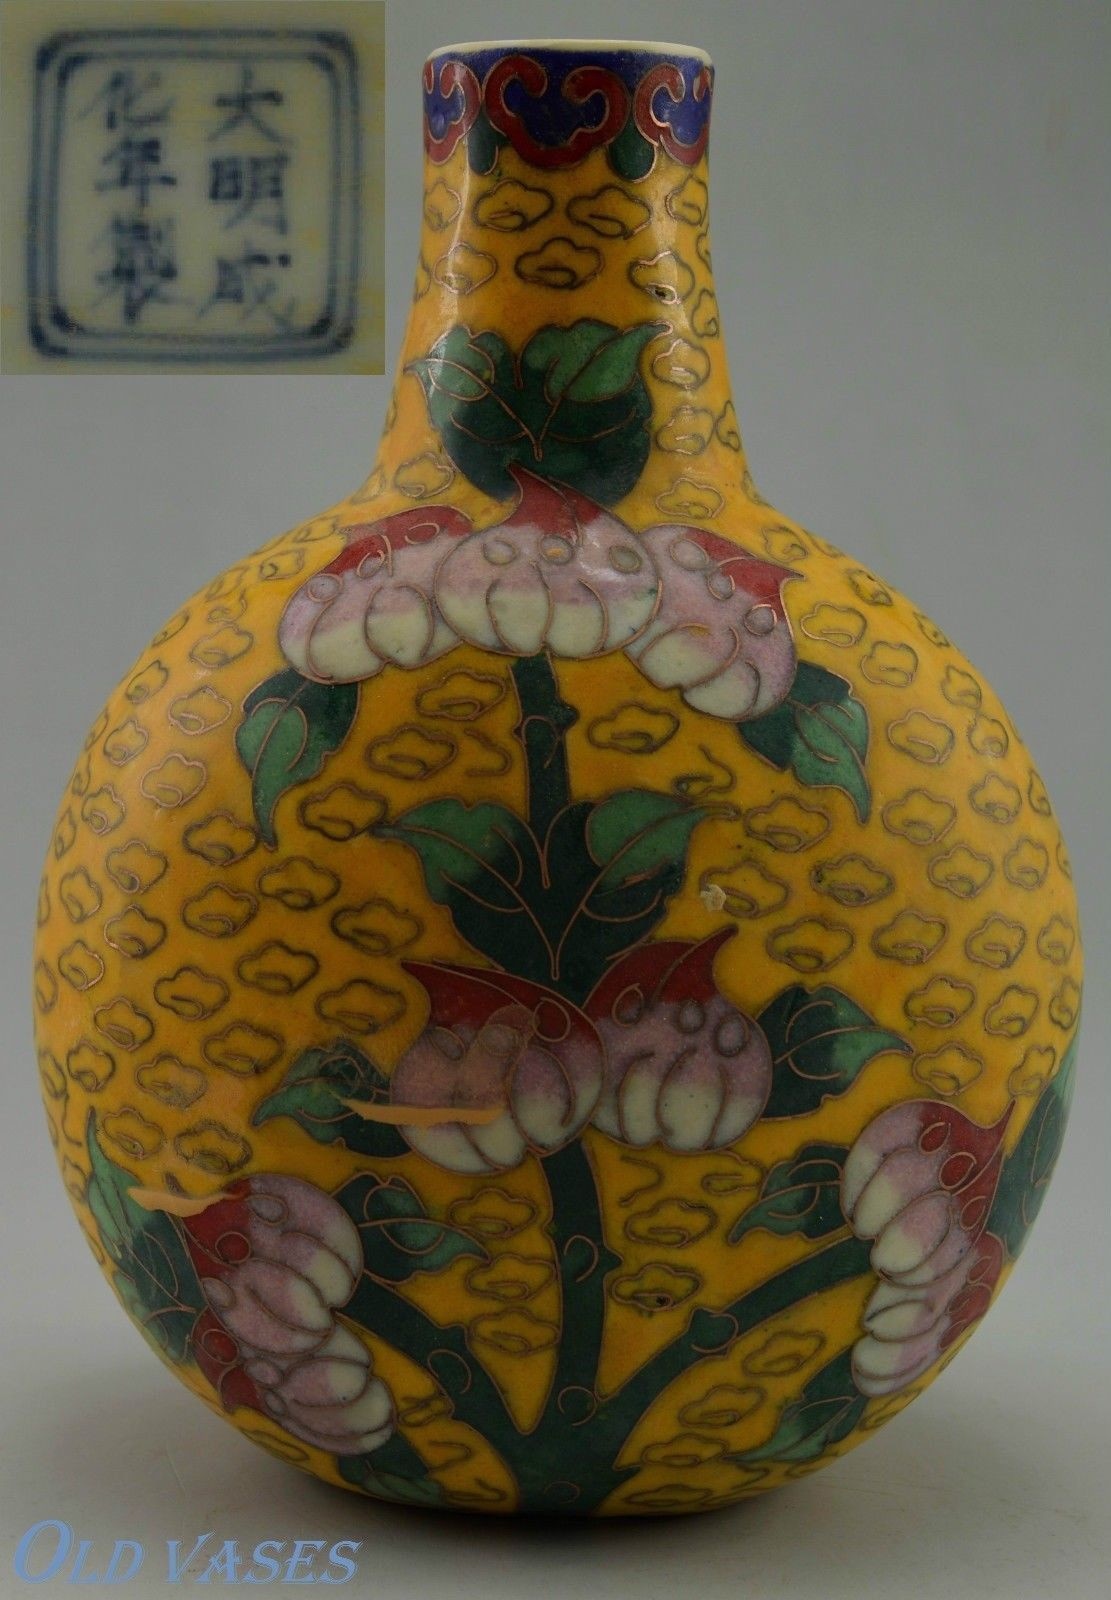 26 Awesome Ming Dynasty Vase for Sale 2021 free download ming dynasty vase for sale of exquisite chinese qing period vase marked for ming dynasty 344 89 with exquisite chinese qing period vase marked for ming dynasty